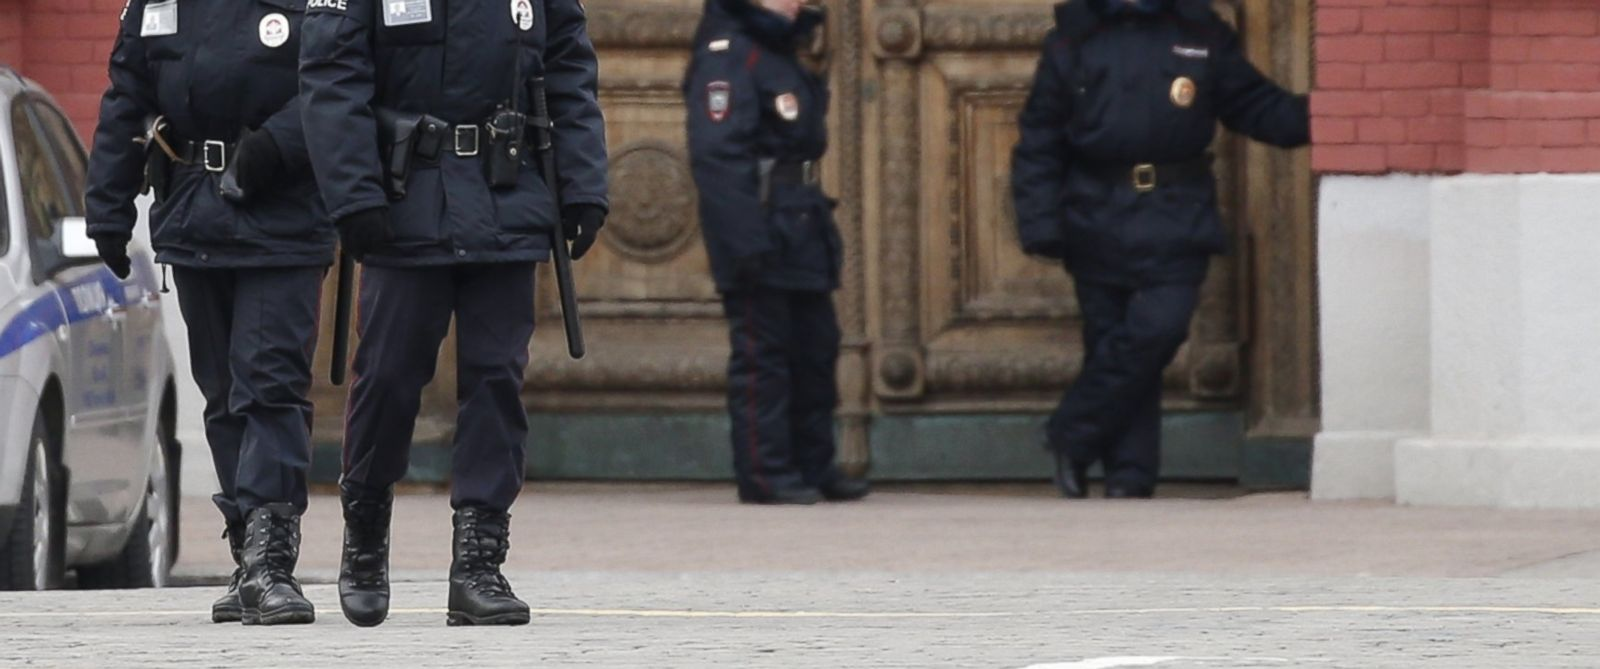 PHOTO:In this file photo, Russian police are seen standing guard at Red Square in Moscow, March 22, 2016.